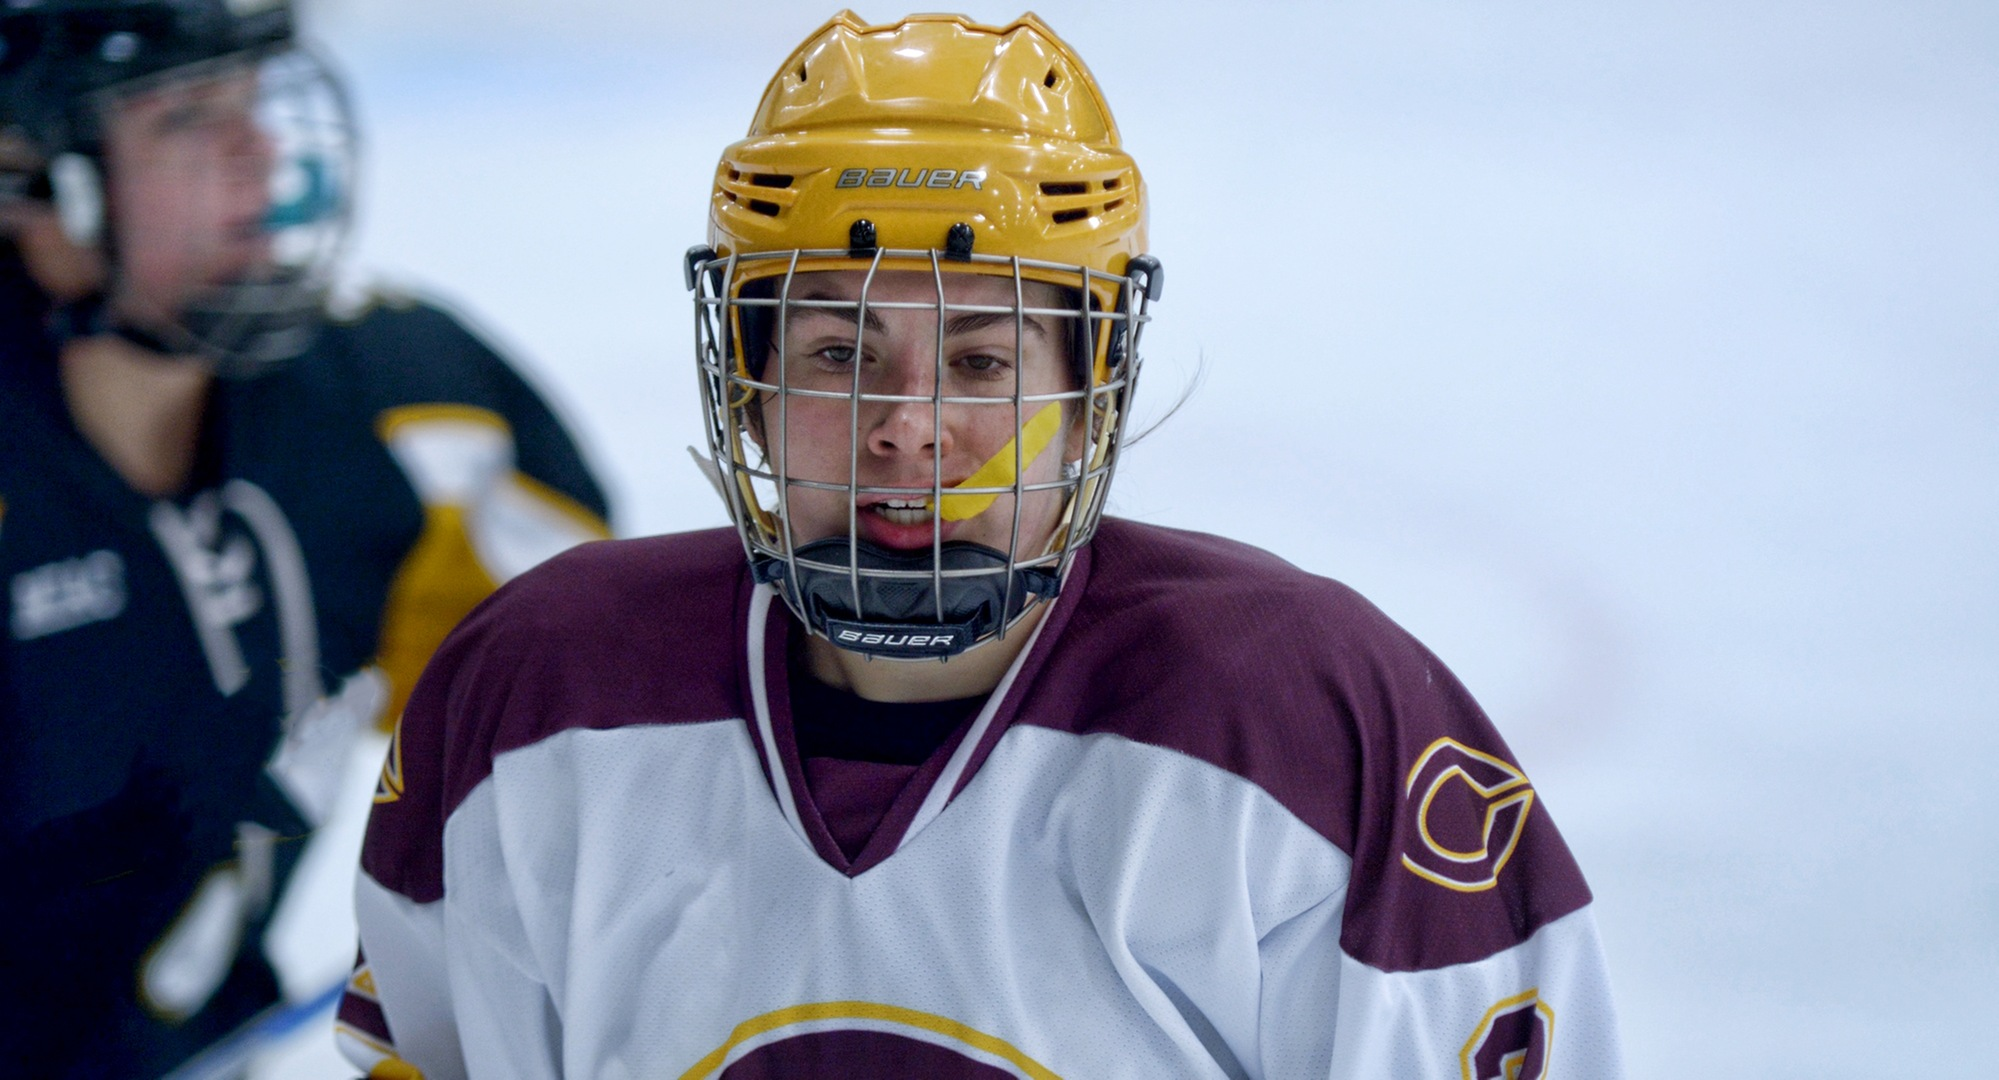 Junior Amanda Flemming scored the game-winning goal in OT to help the Cobbers beat St. Catherine 3-2.